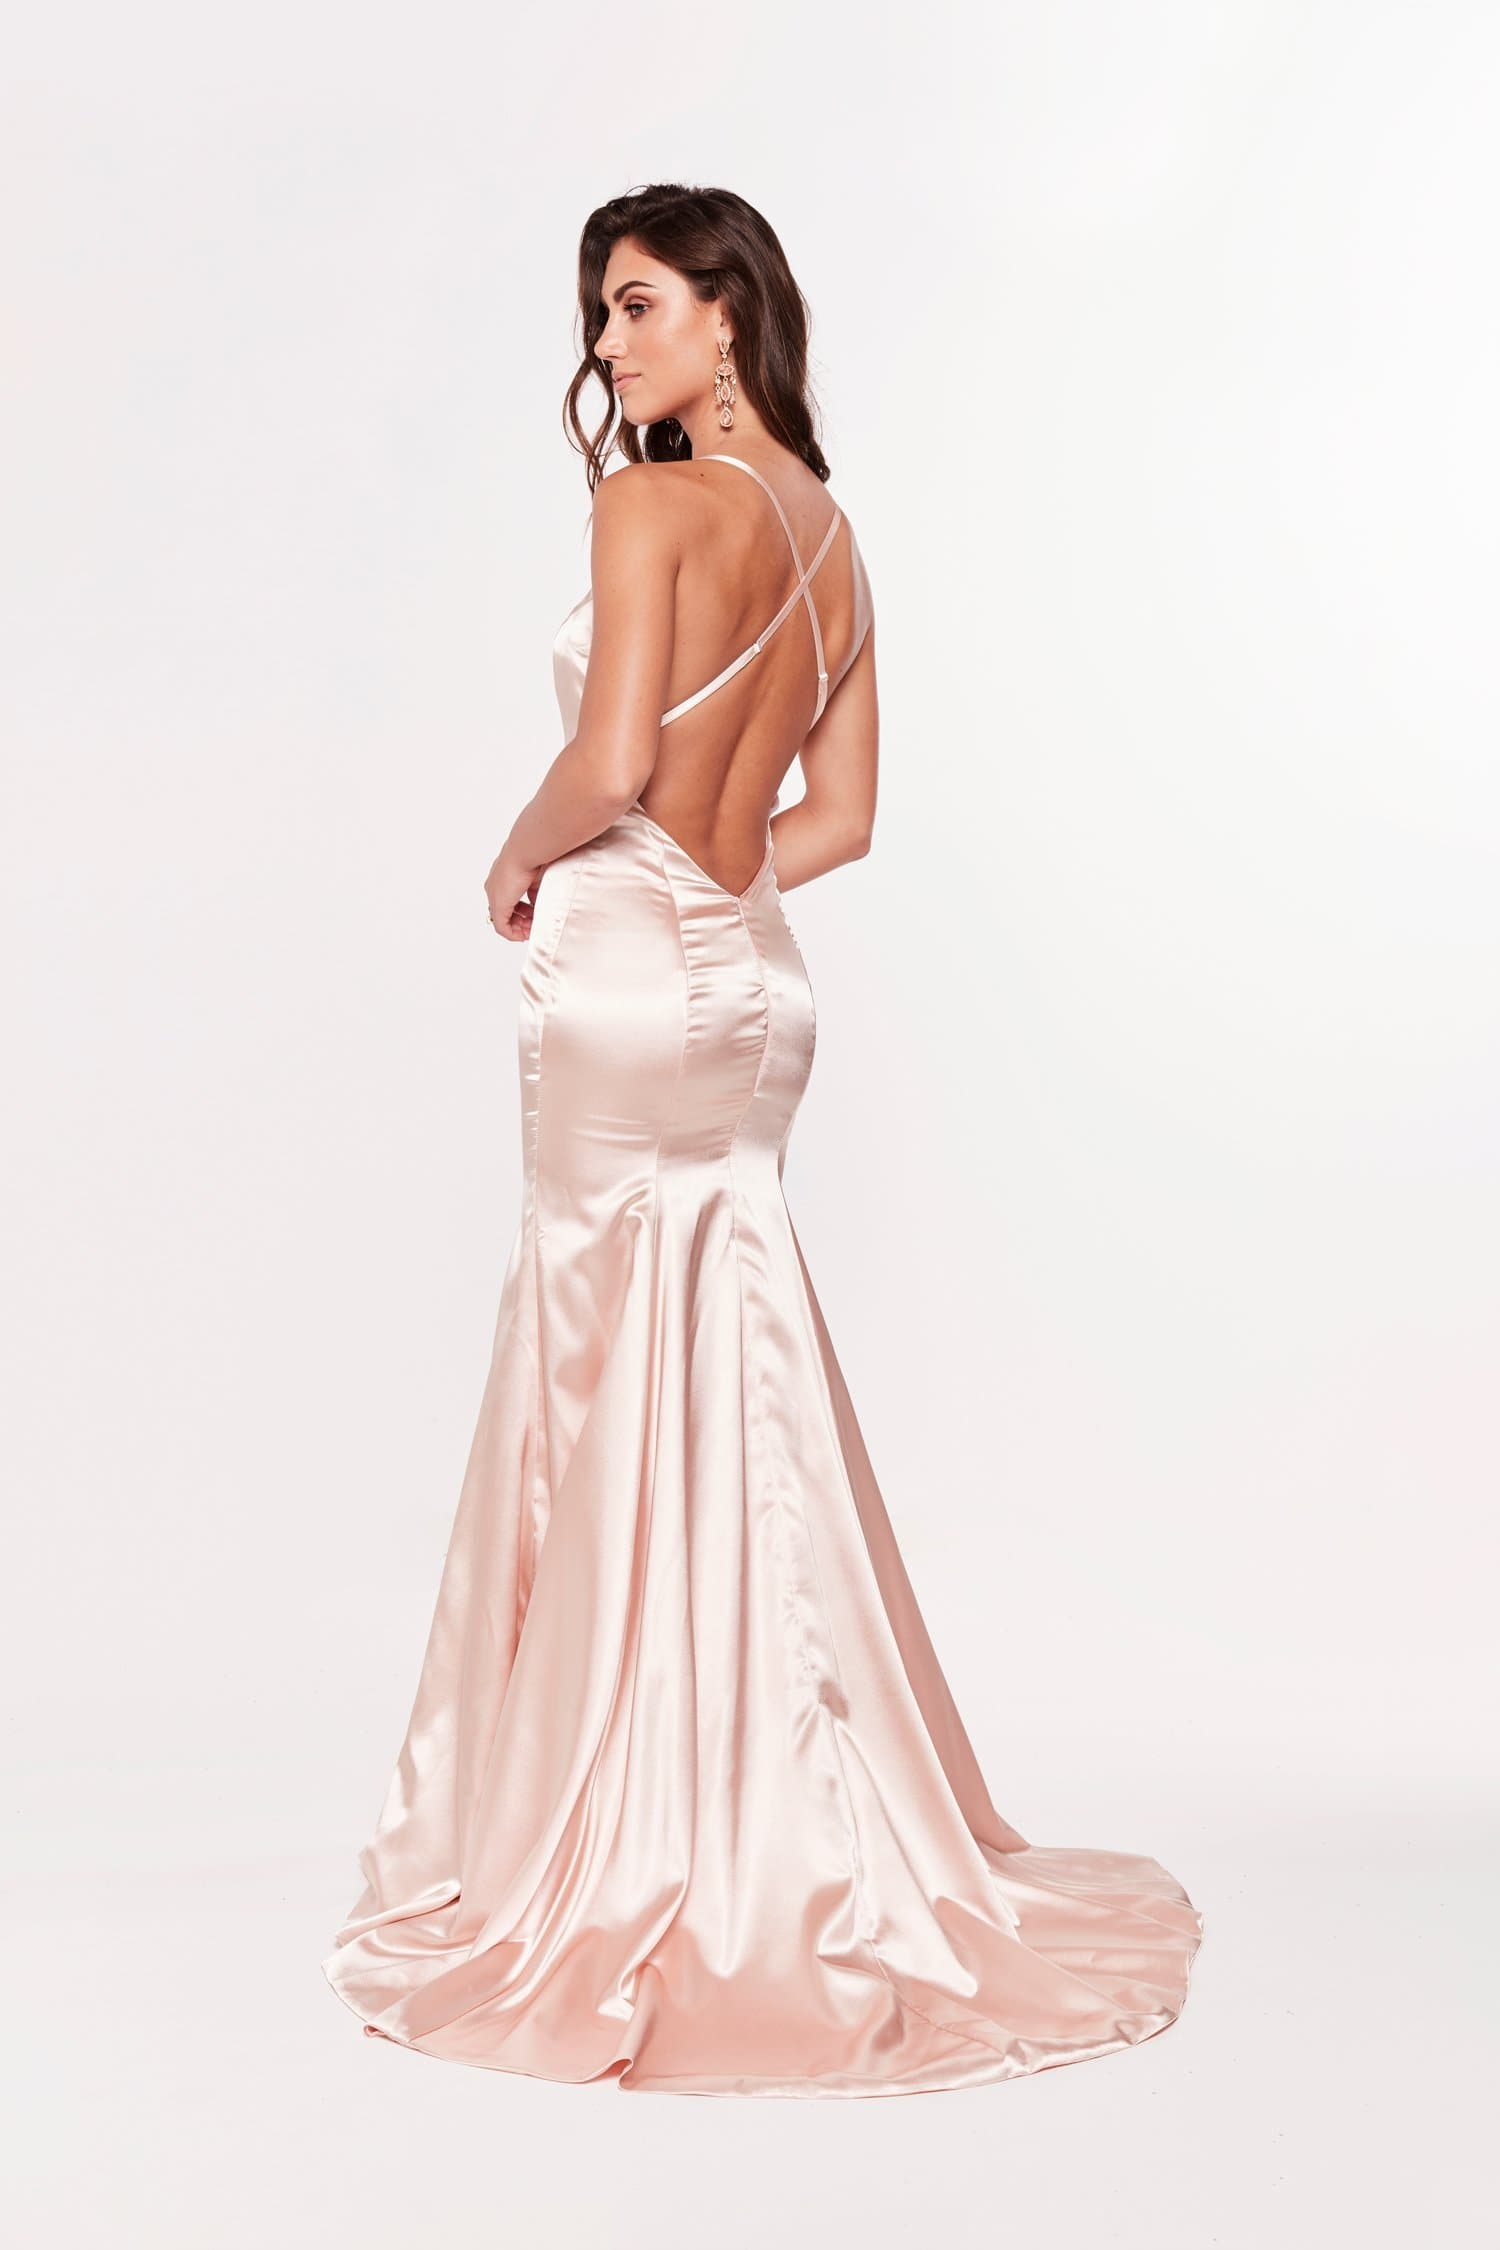 Peach and Silver Satin Dresses